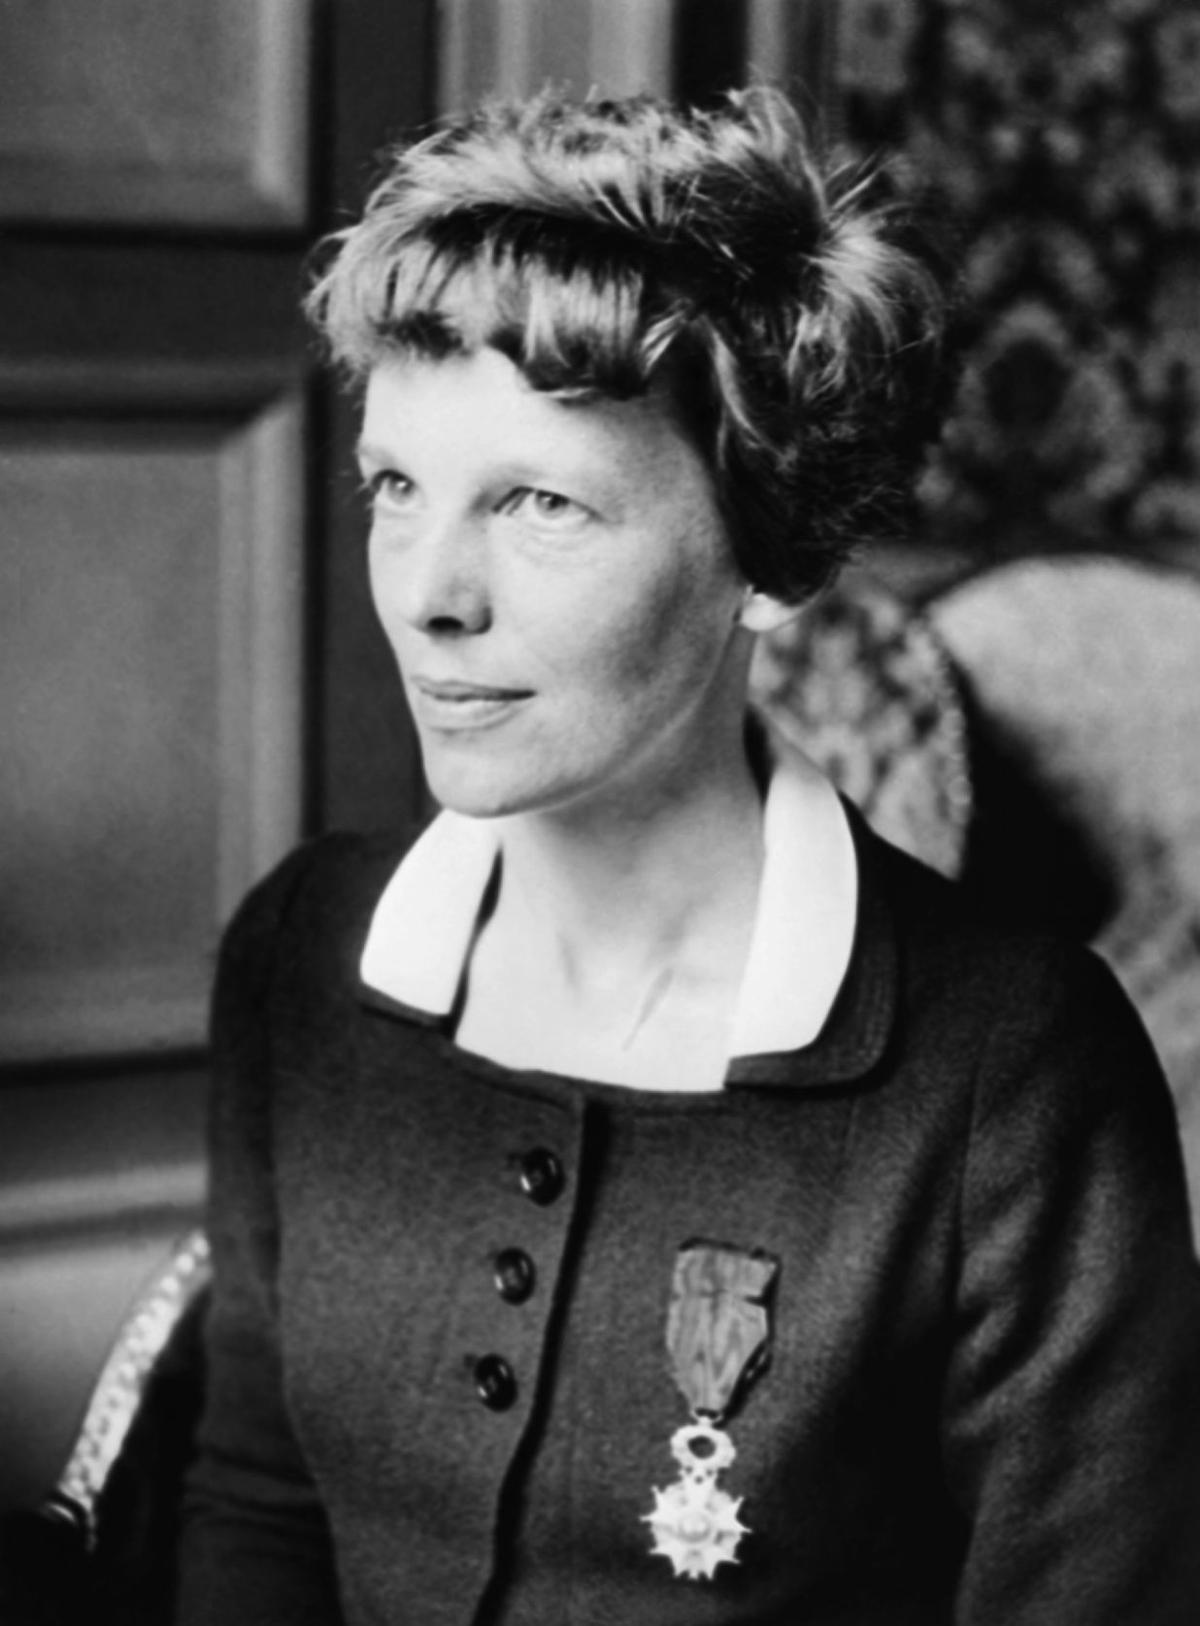 essays on amelia earhart Open document below is an essay on amelia earhart early life from anti essays, your source for research papers, essays, and term paper examples.